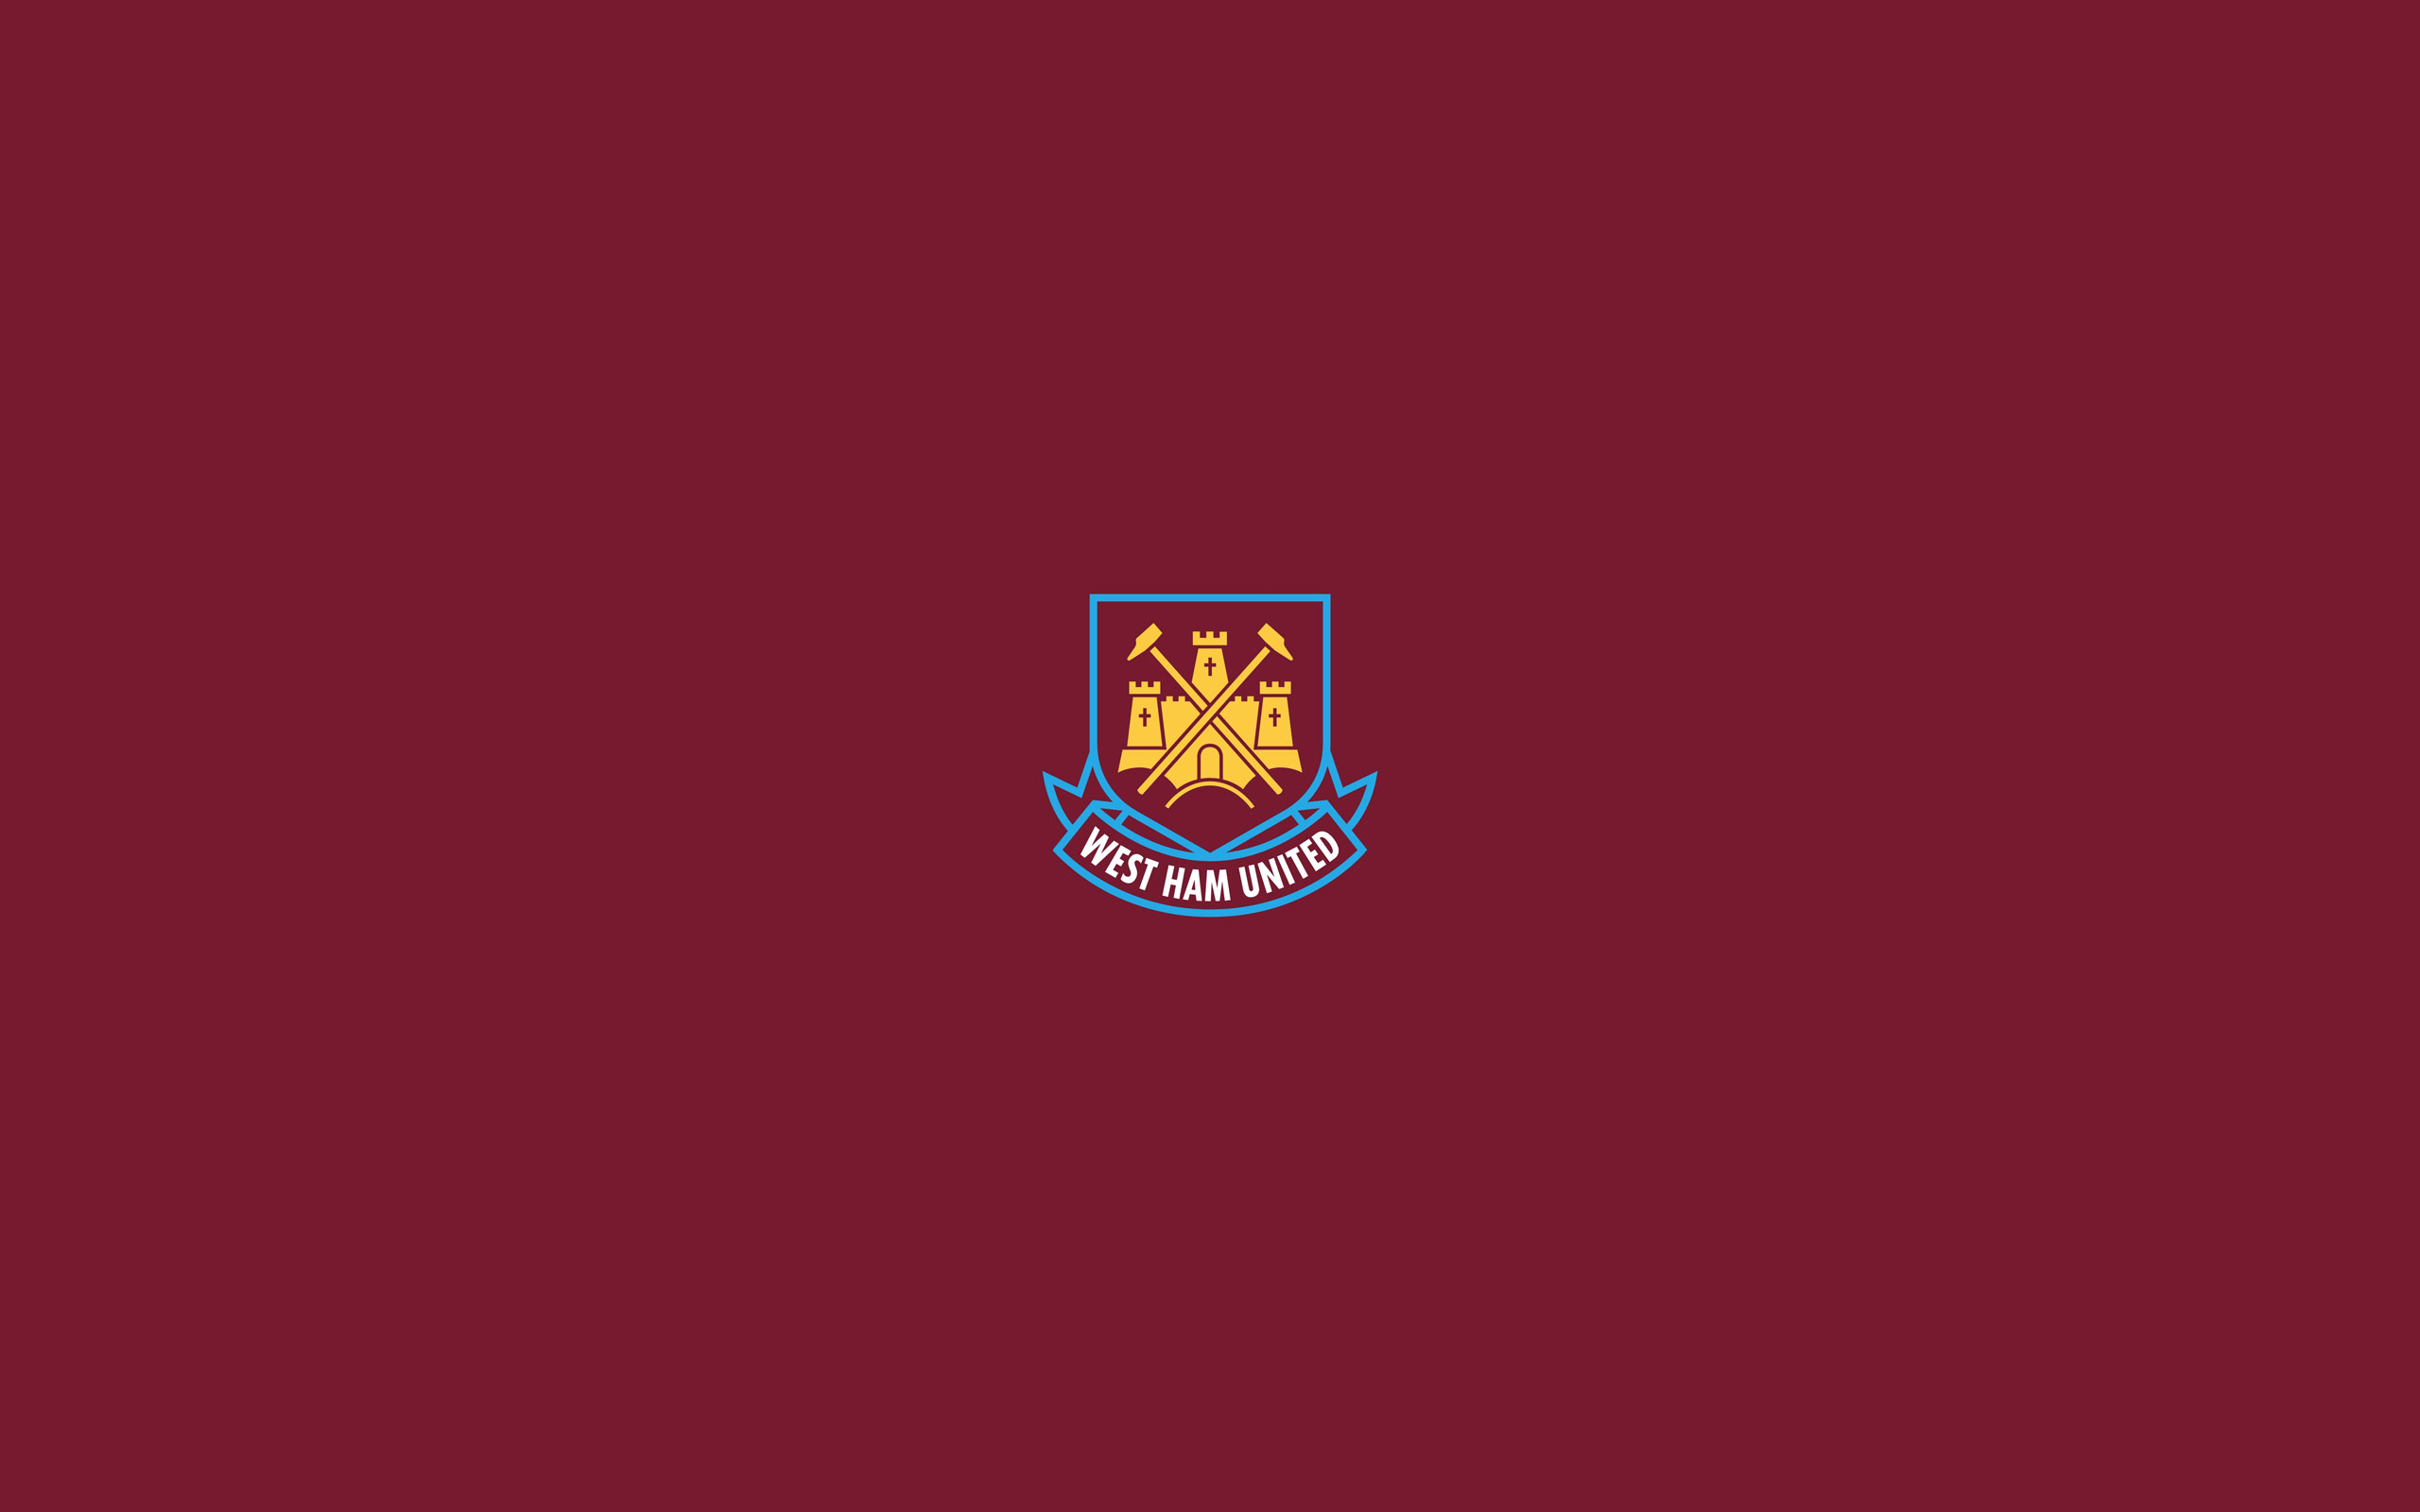 3d Hd Wallpapers For Android Mobile Full Screen Download West Ham United Wallpaper Gallery